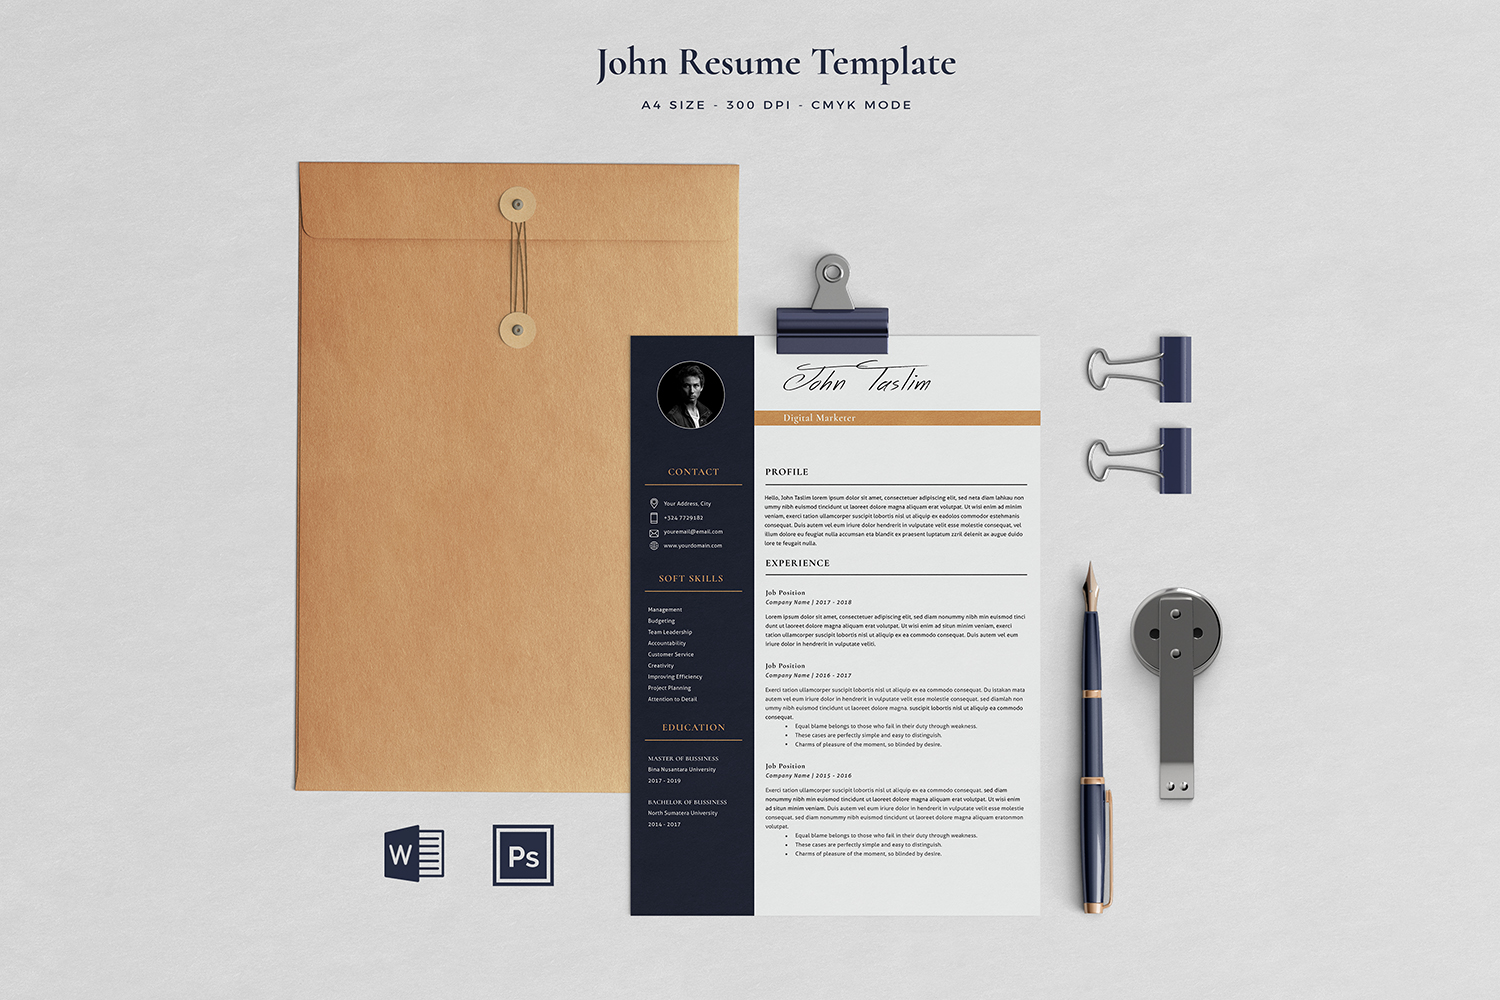 Job Seeker's Resume Bundle example image 7